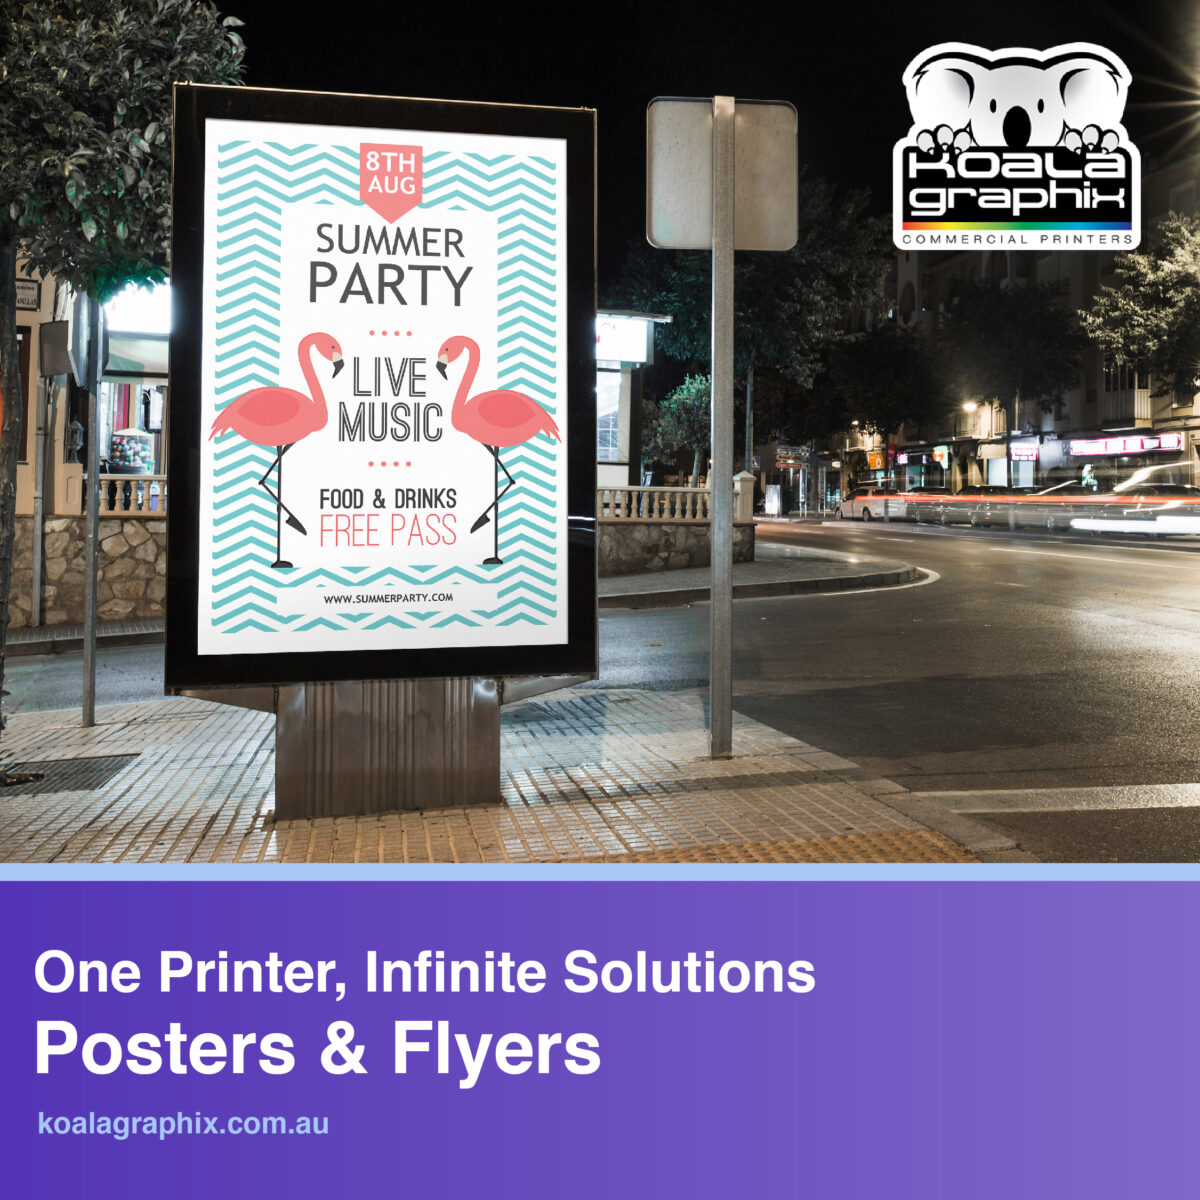 in Brisbane Commercial printer